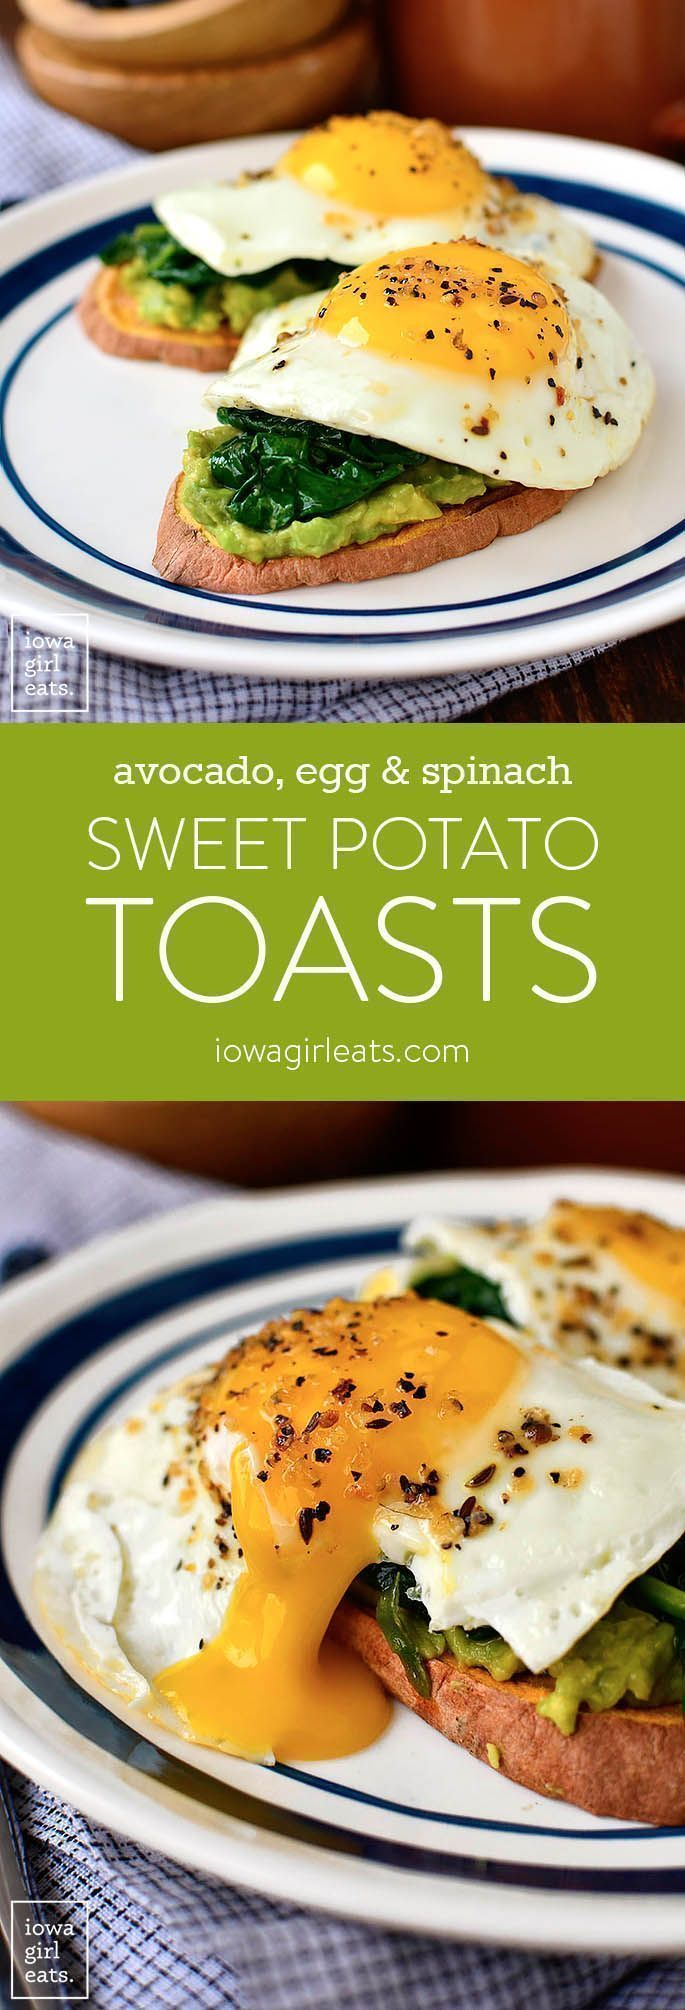 Avocado, Egg and Spinach Candy Potato Toasts